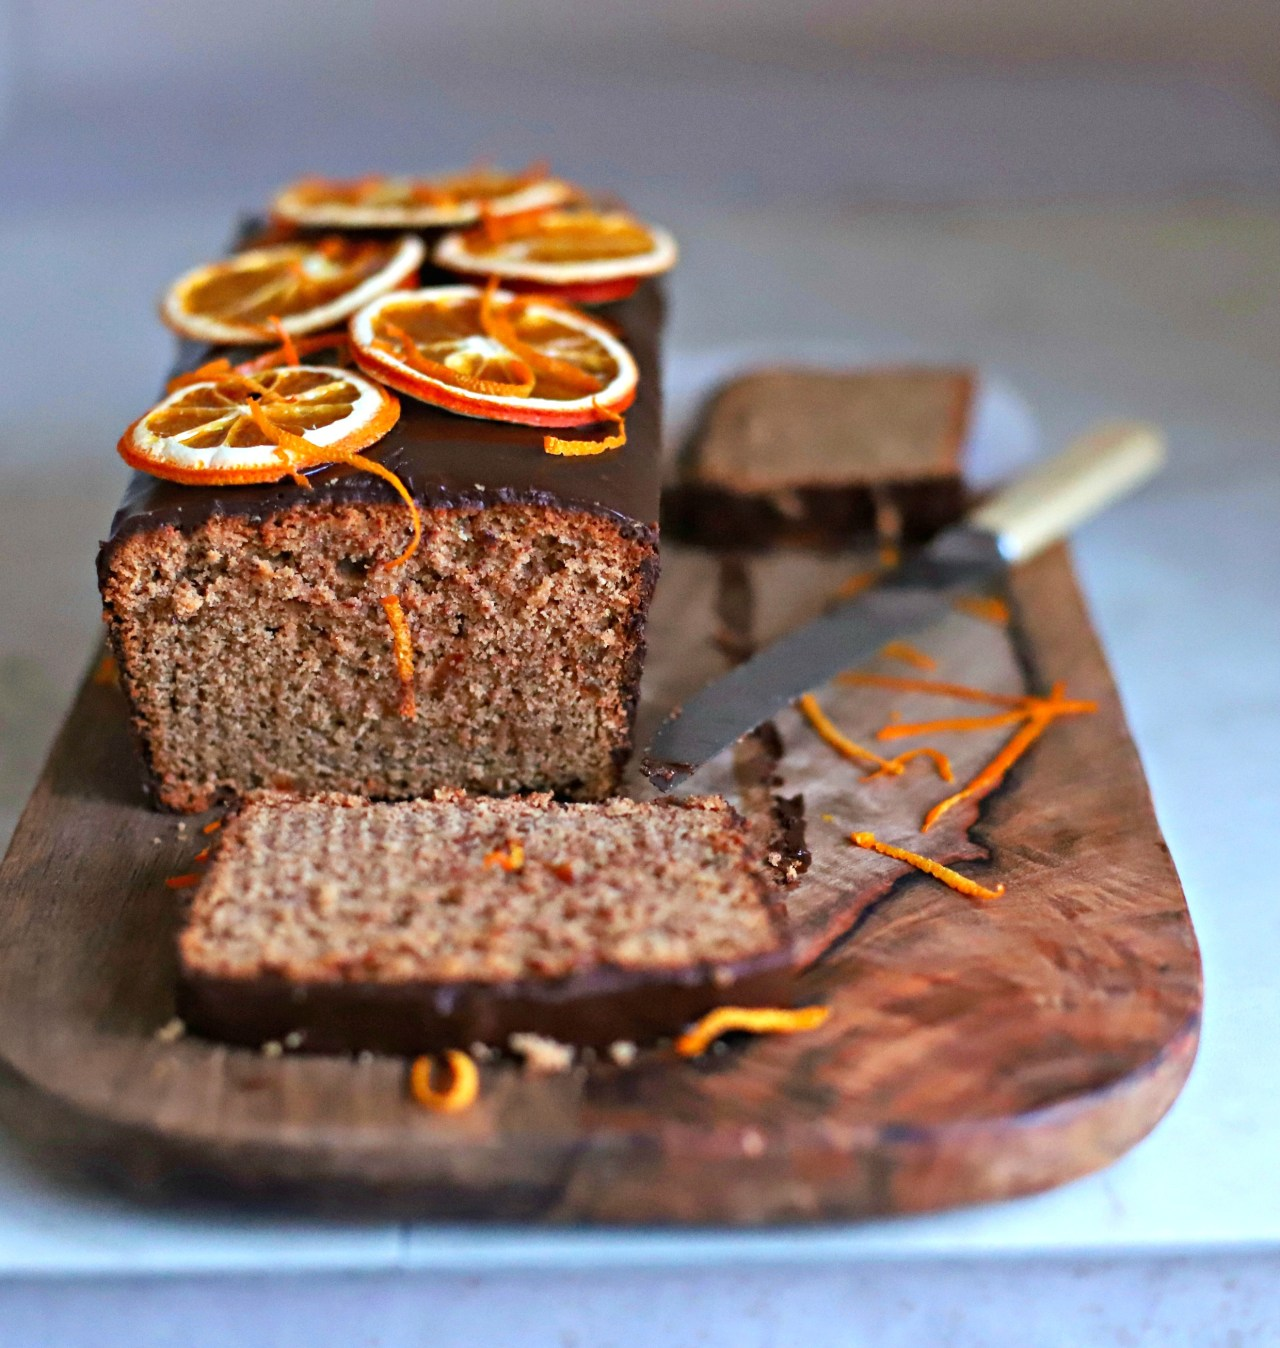 Heady with a homemade lebkuchen spice mix, this one-bowl, marmalade-spiked and chocolate-covered cake is great with a cup of tea or coffee. It's more than a gingerbread!